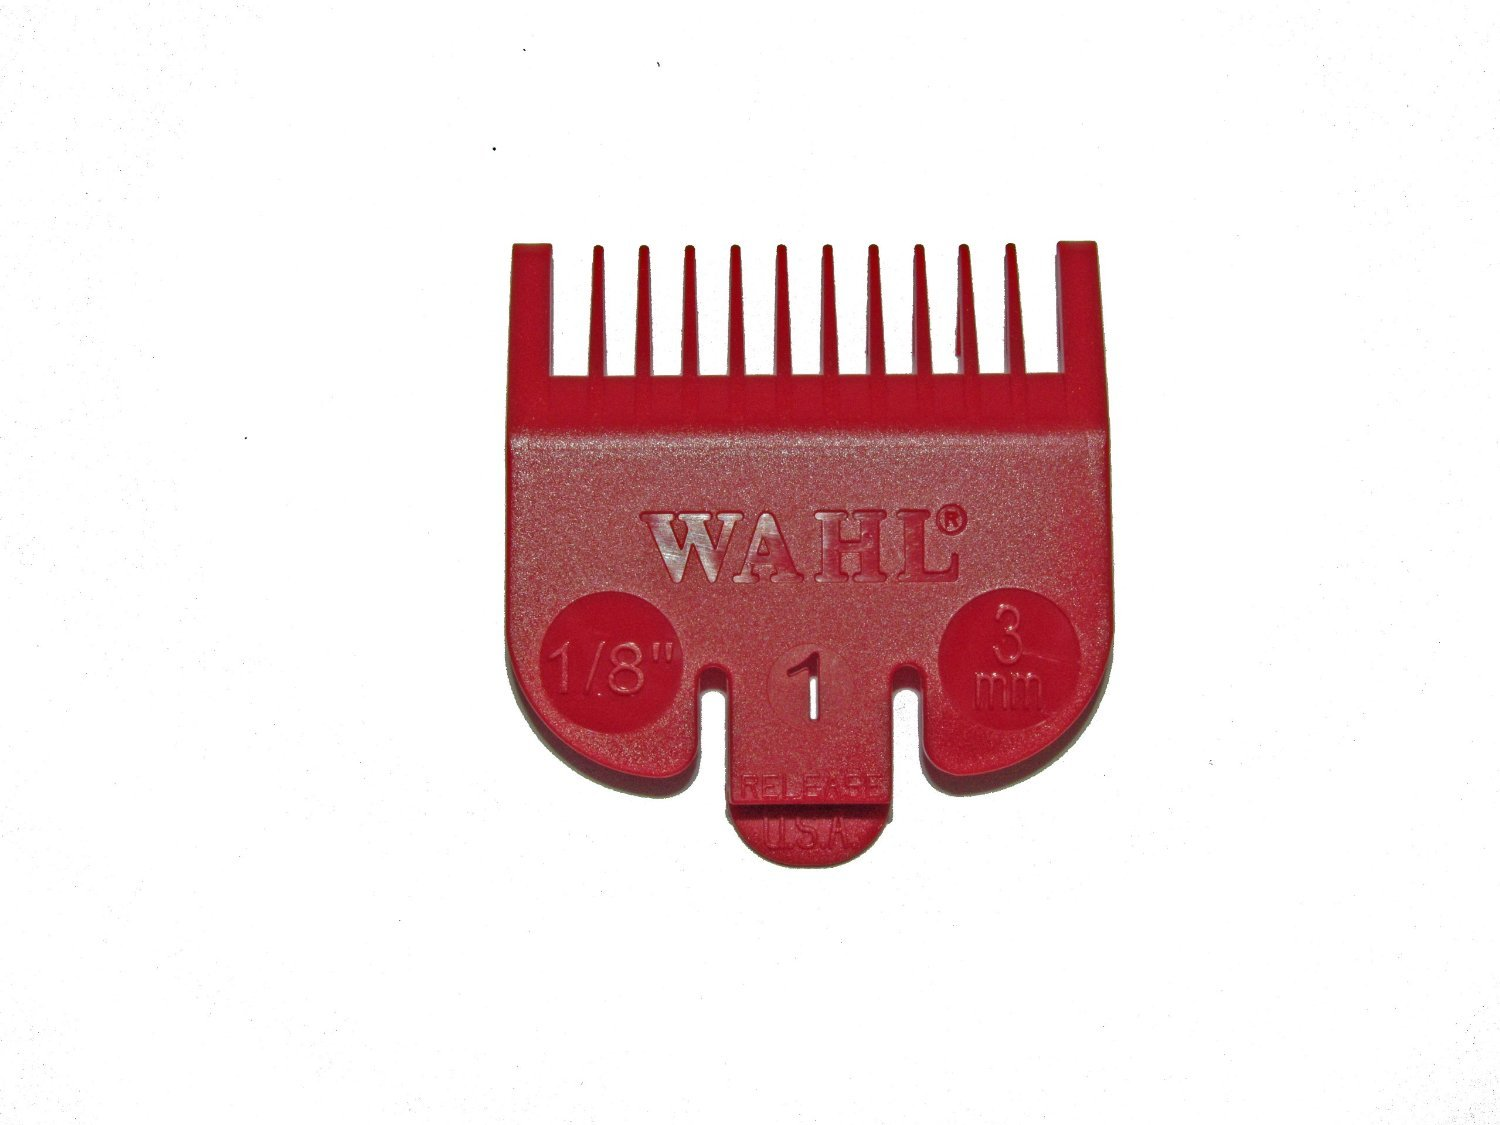 Wahl No.1 Attachment Comb 3mm (1/8) Cut Red - WAH31142001 by Wahl 3114-2001